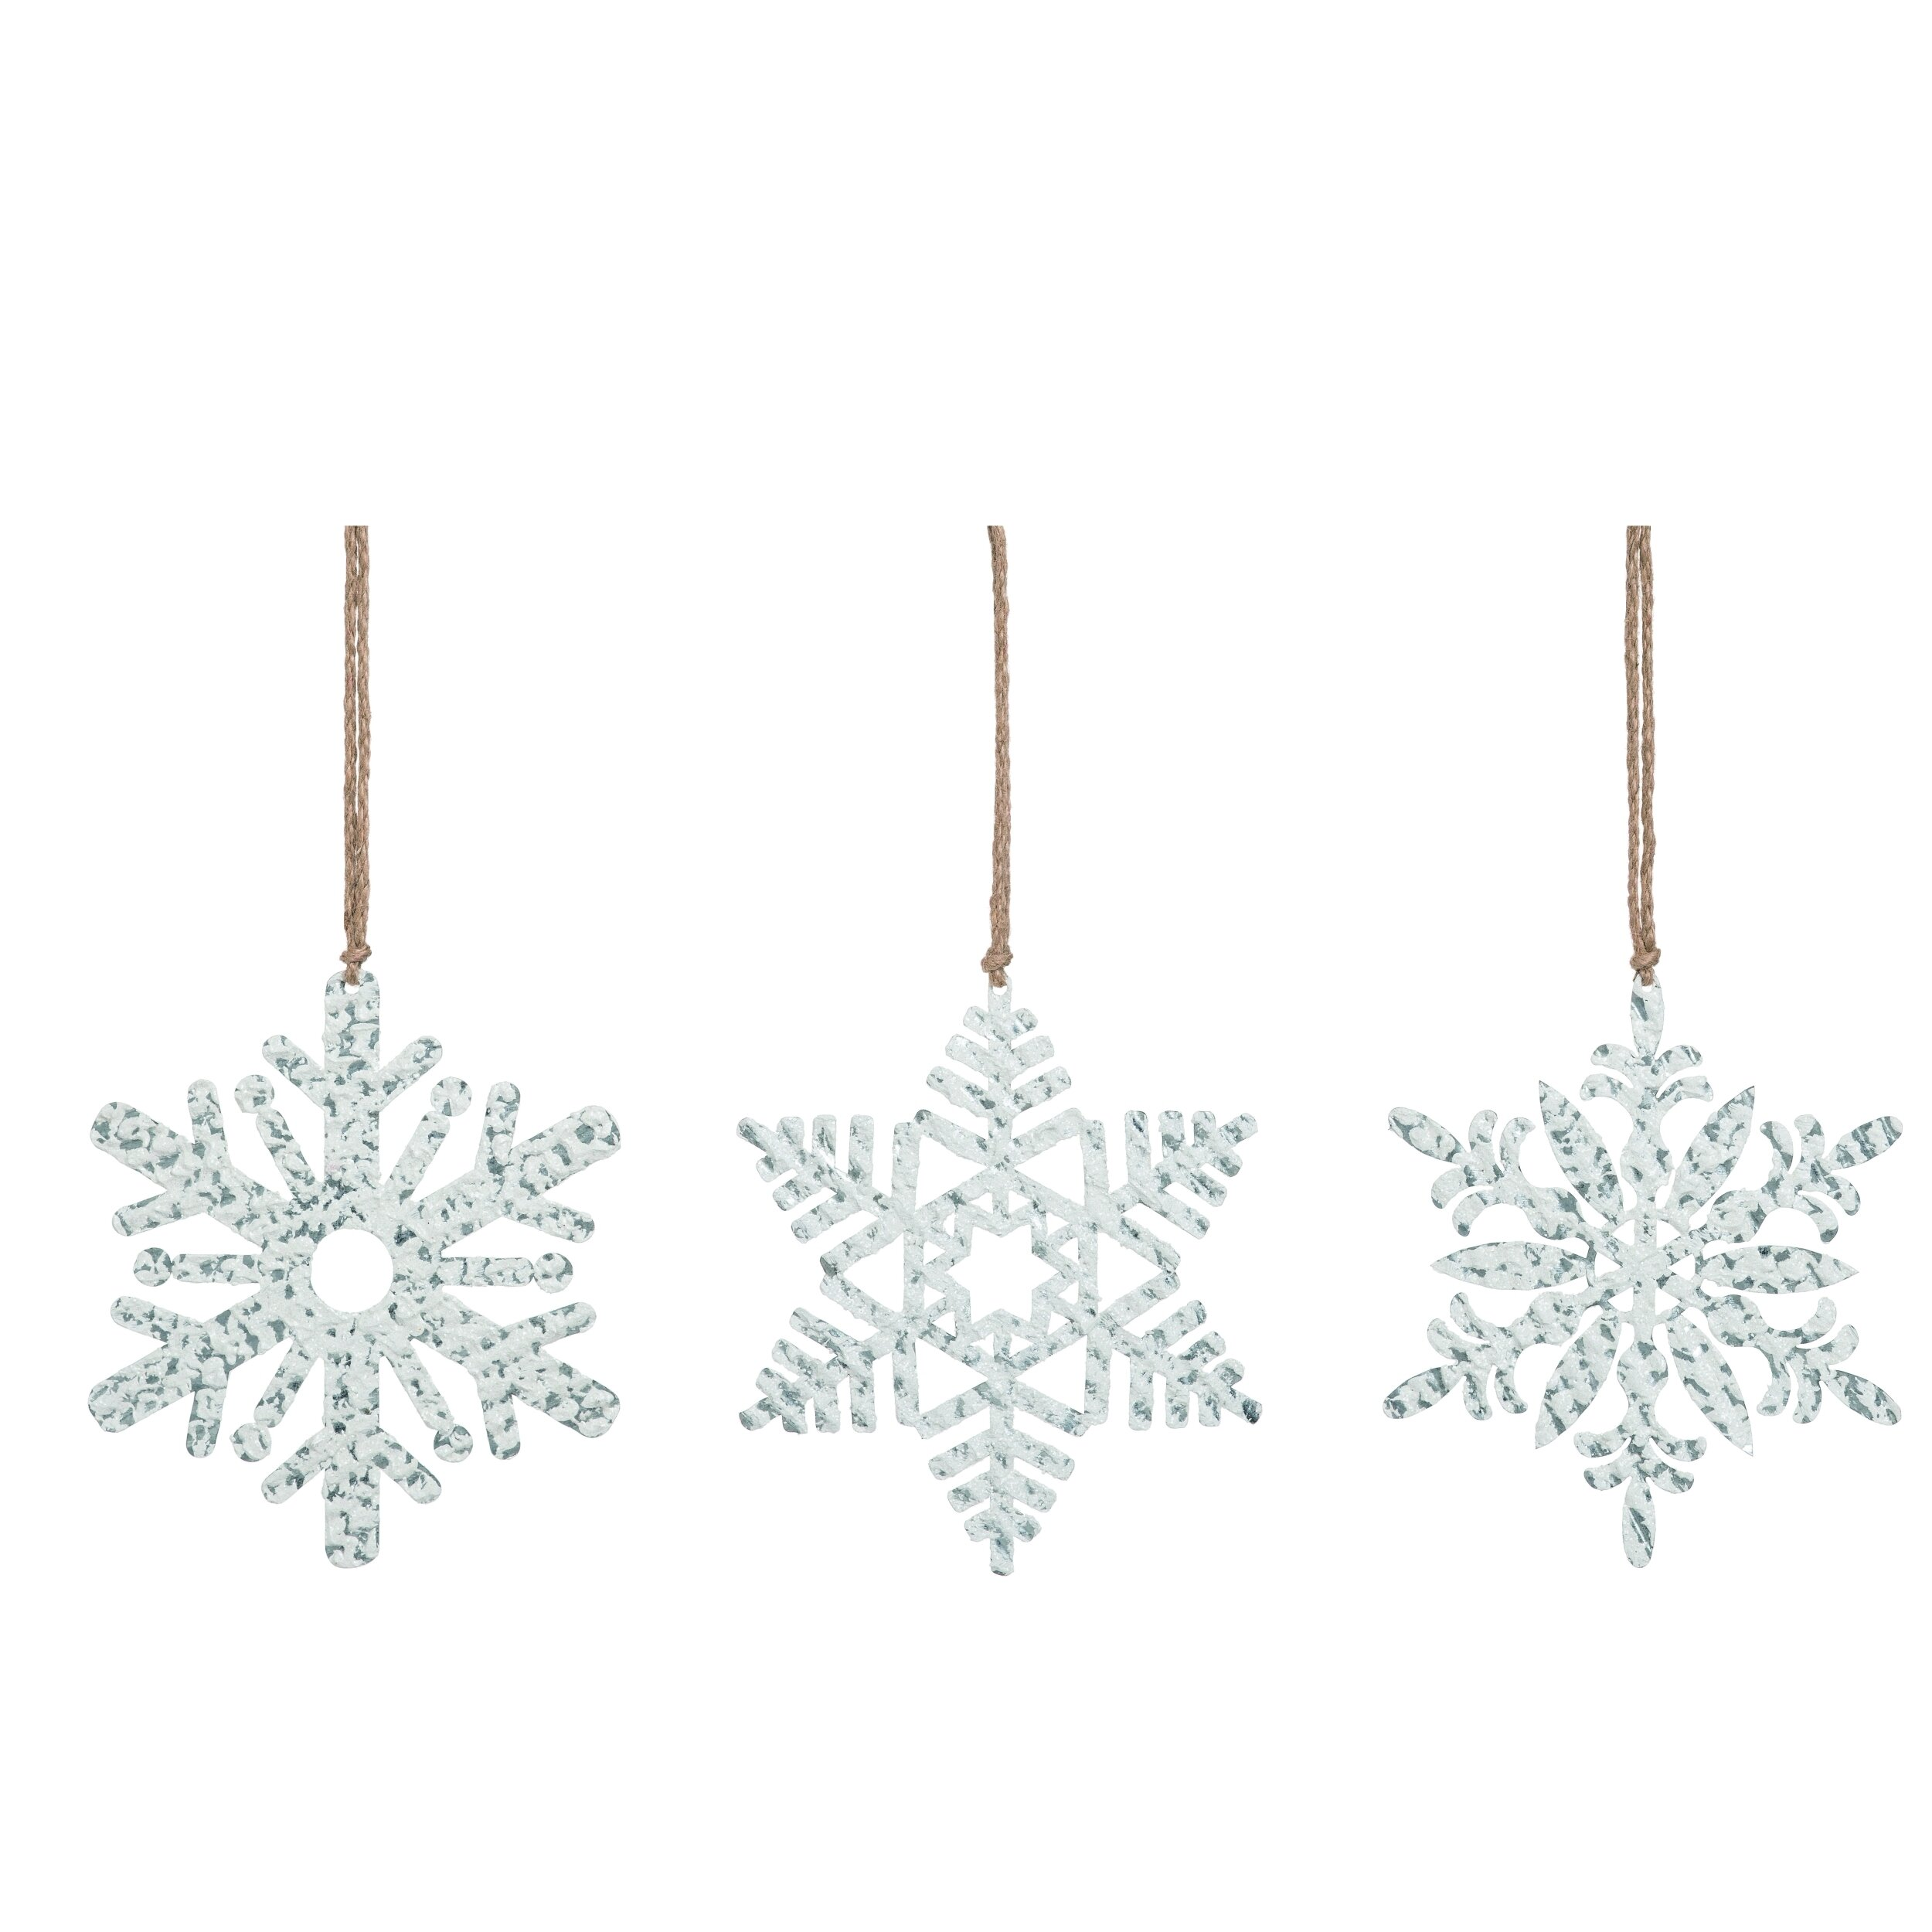 Extra Large Metal Christmas Ornaments You Ll Love In 2021 Wayfair